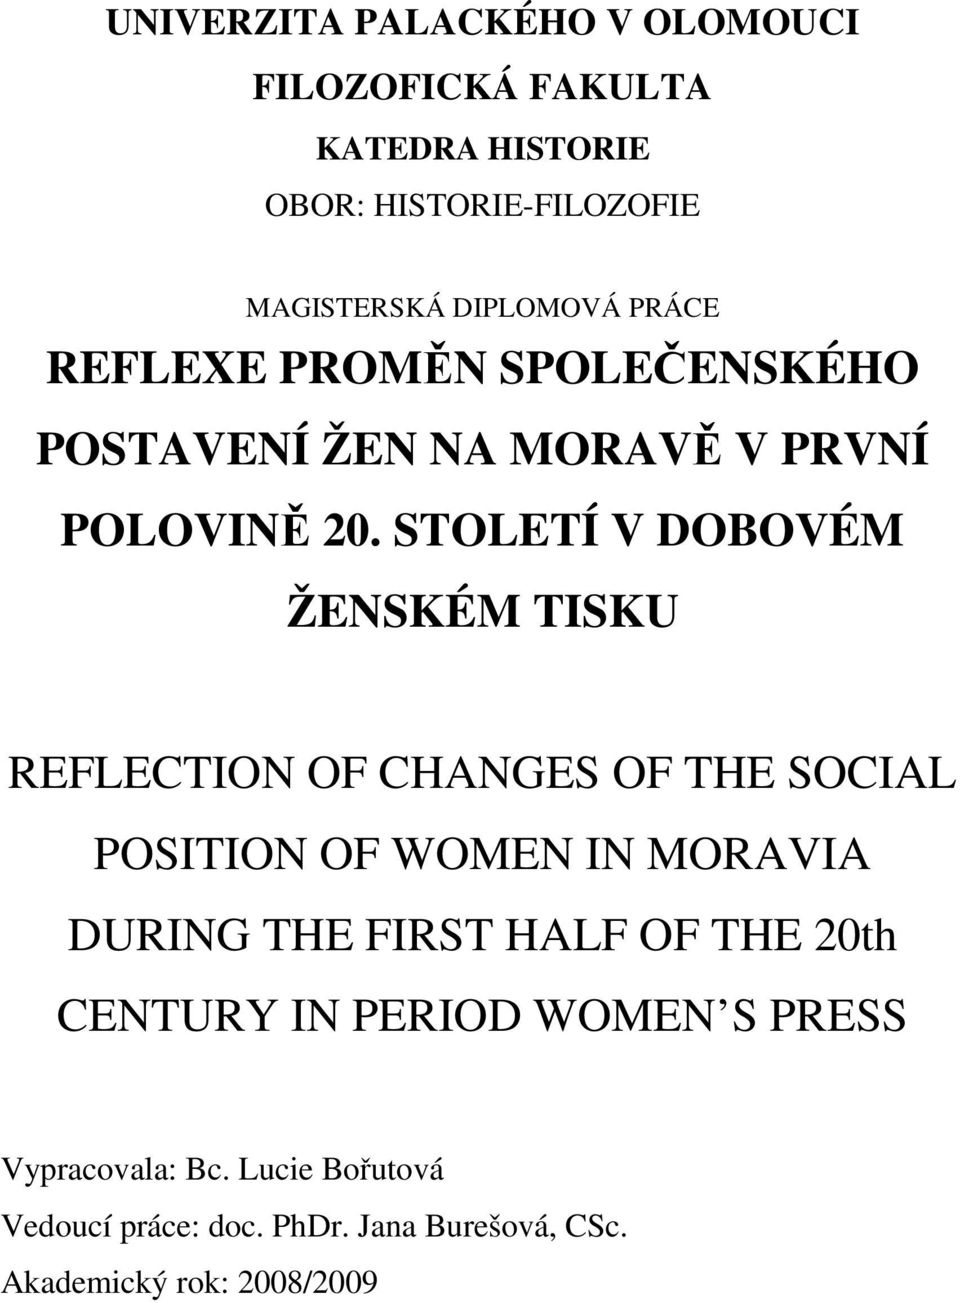 STOLETÍ V DOBOVÉM ŽENSKÉM TISKU REFLECTION OF CHANGES OF THE SOCIAL POSITION OF WOMEN IN MORAVIA DURING THE FIRST